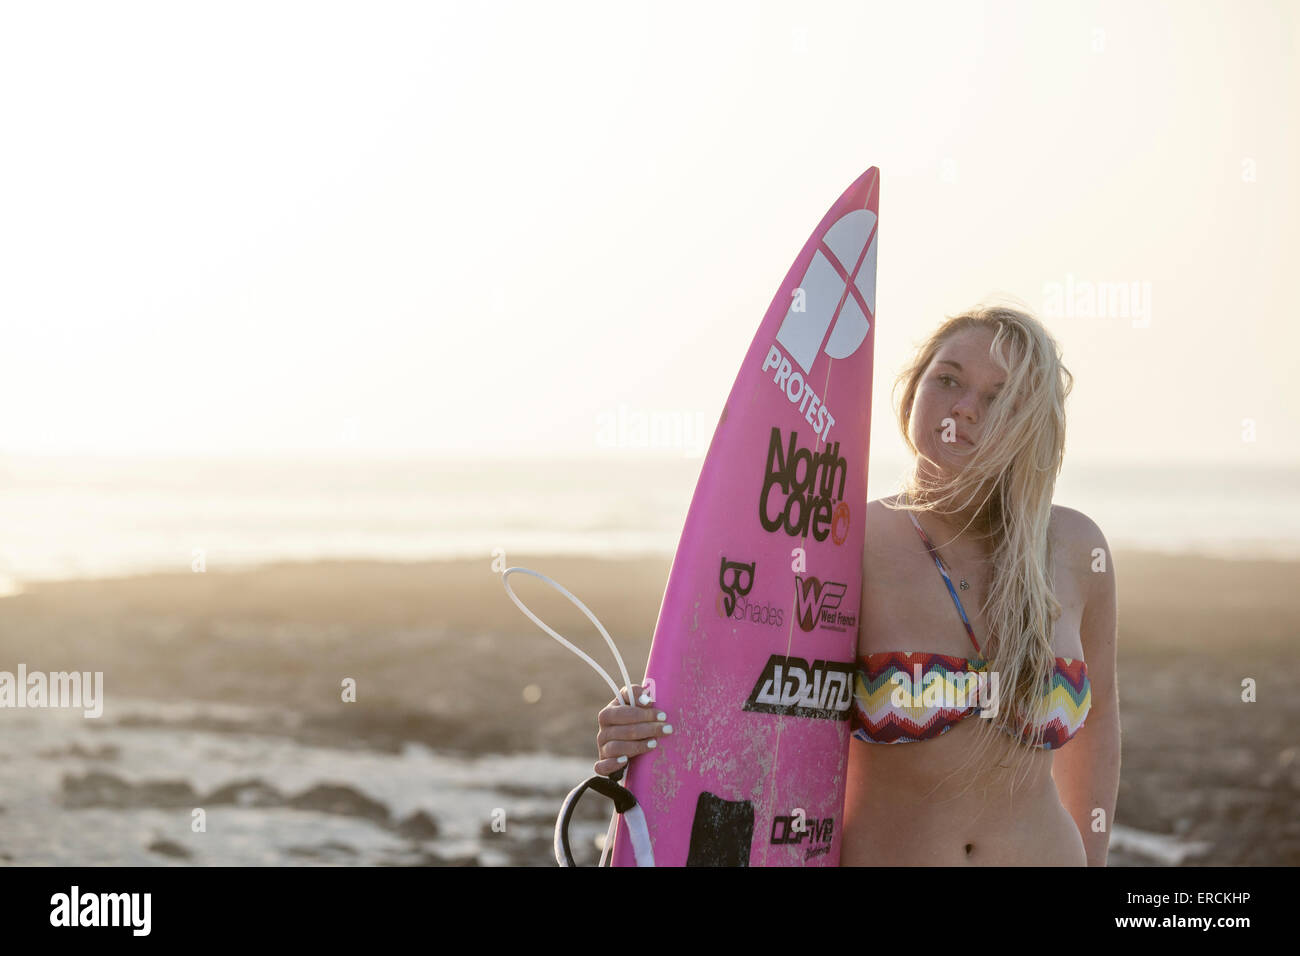 Blonde surfer girl standing alone on the beach at sunset with her surfboard - Stock Image